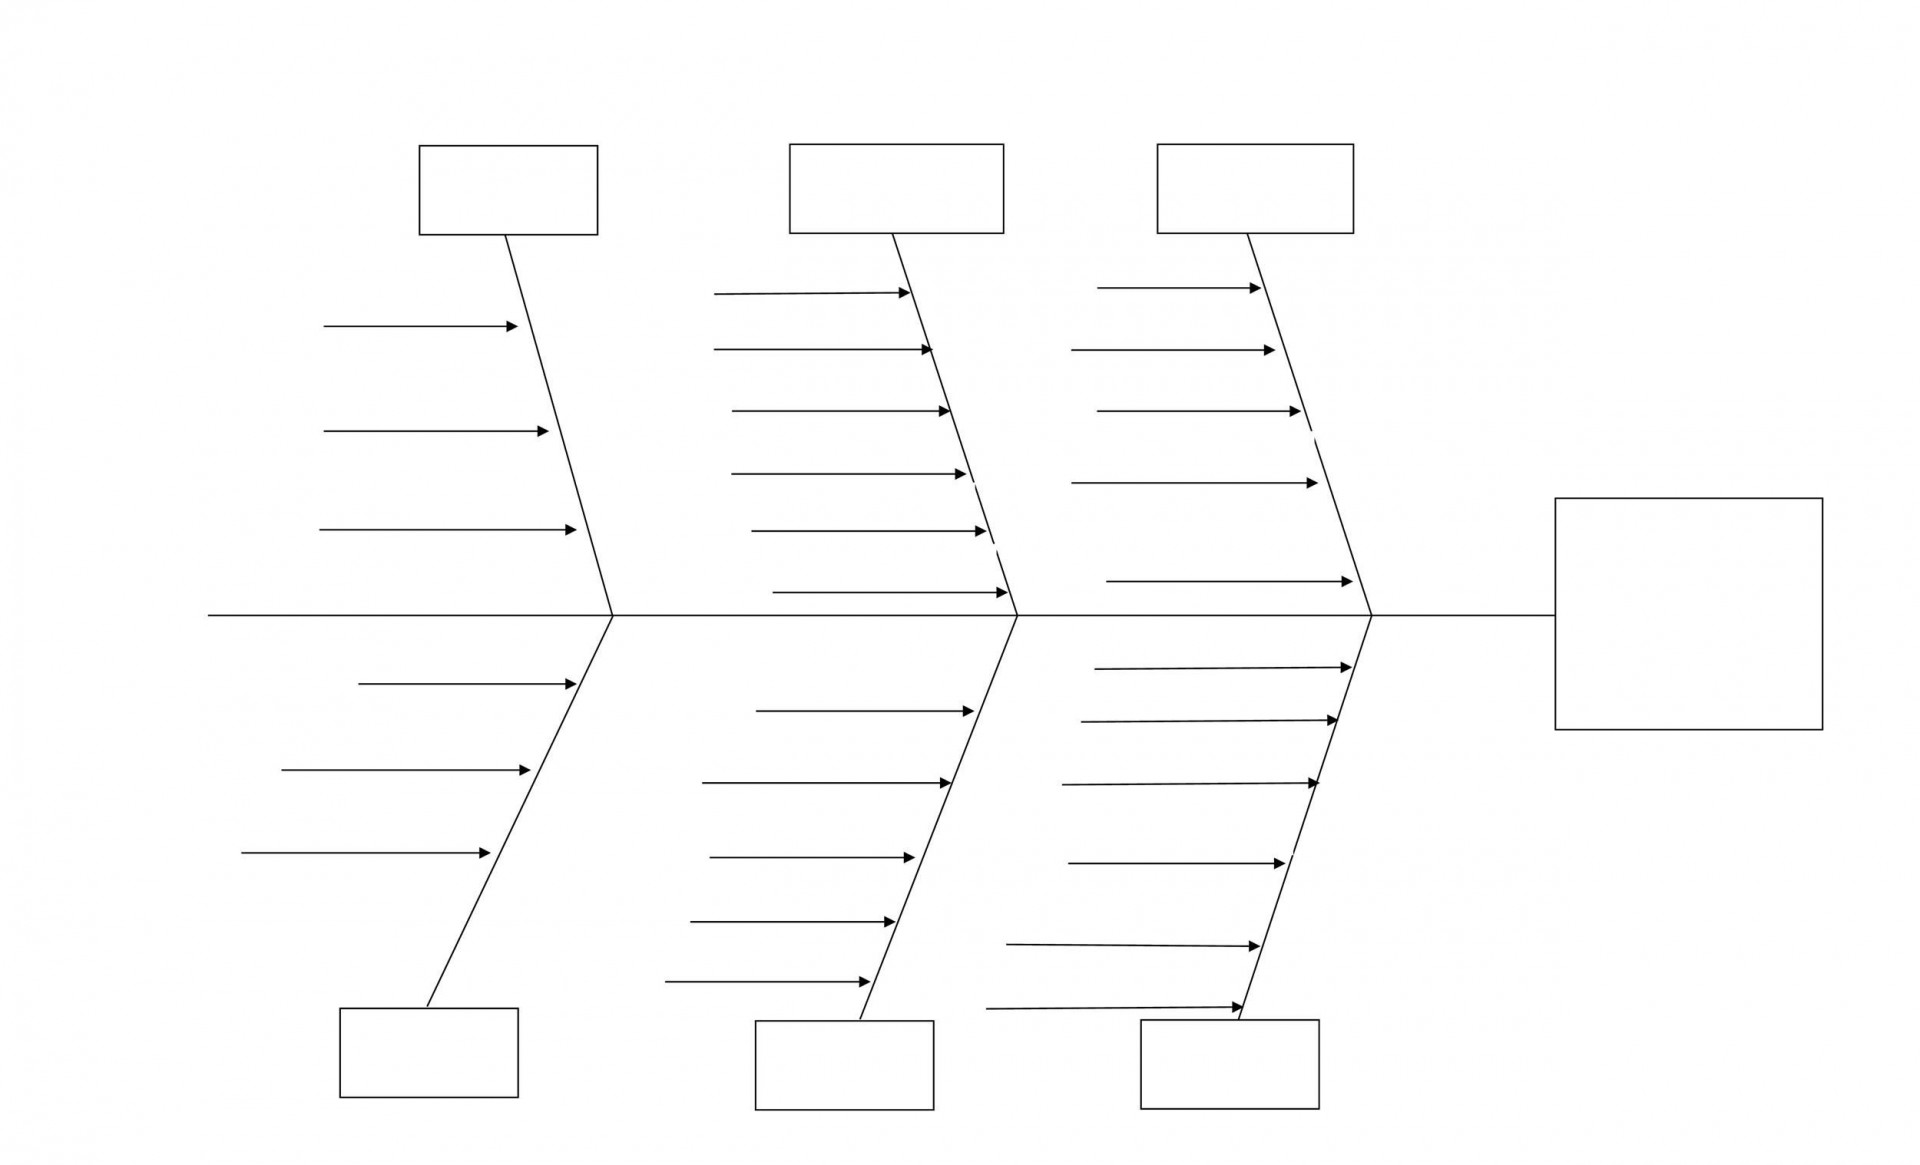 002 Dreaded Free Fishbone Diagram Template Microsoft Word Highest Clarity 1920